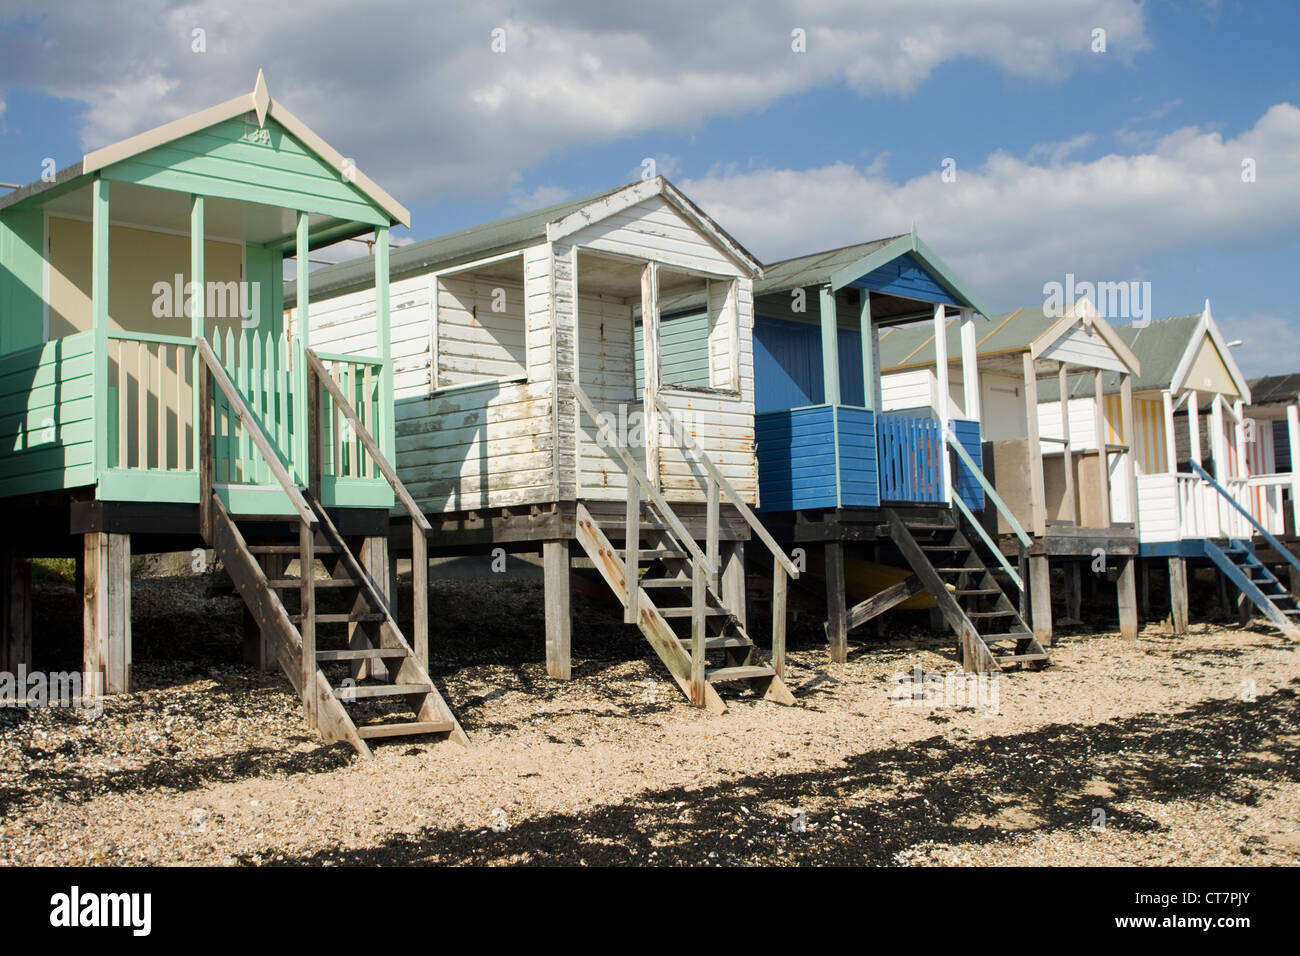 Beach Huts at Southend-on-Sea beach in Essex, England. - Stock Image